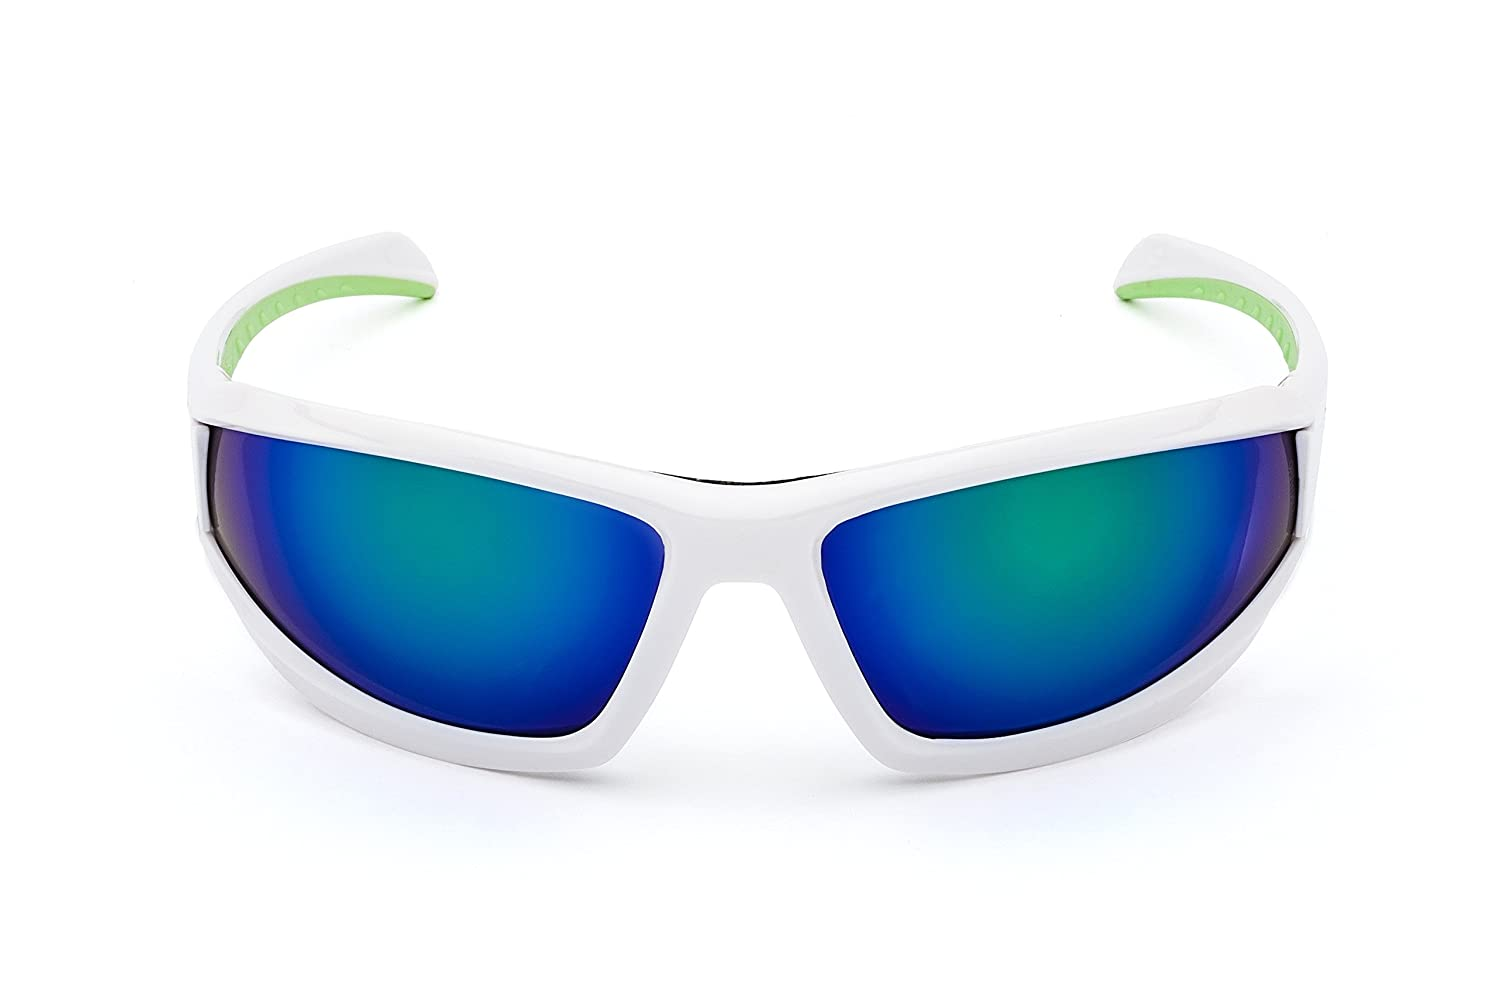 bc22abd65d4 Amazon.com   MORR MARRCONI Z75 Sport Sunglasses with Mirrored Lenses and  Protective Foam Padded Frame for Mountain Bike